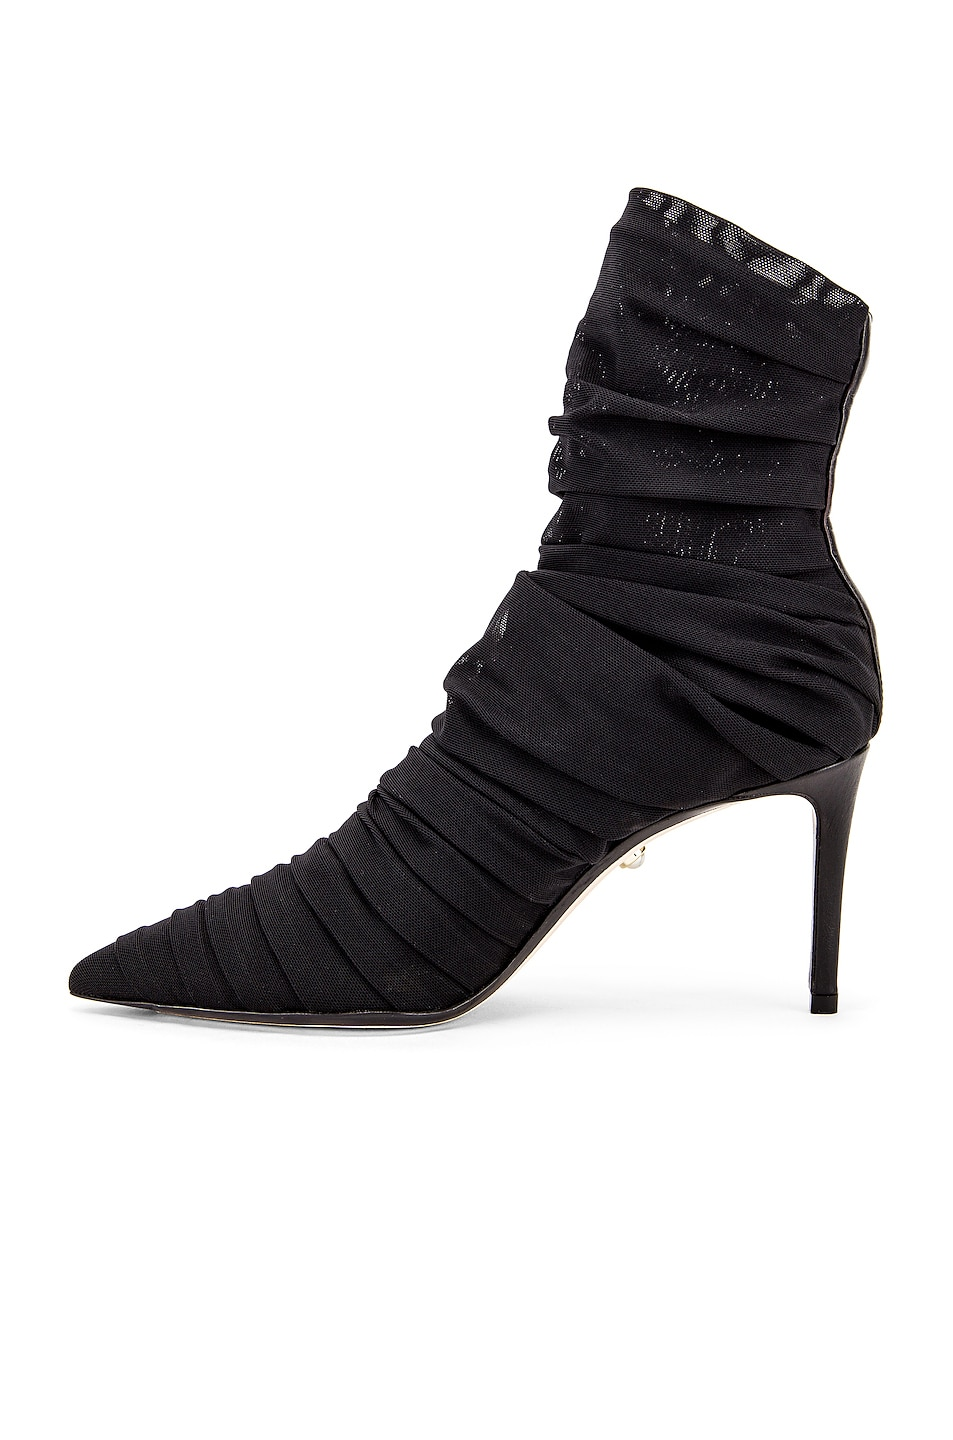 Image 5 of ALEVI Milano Alevi Gaia Bootie in Black Net